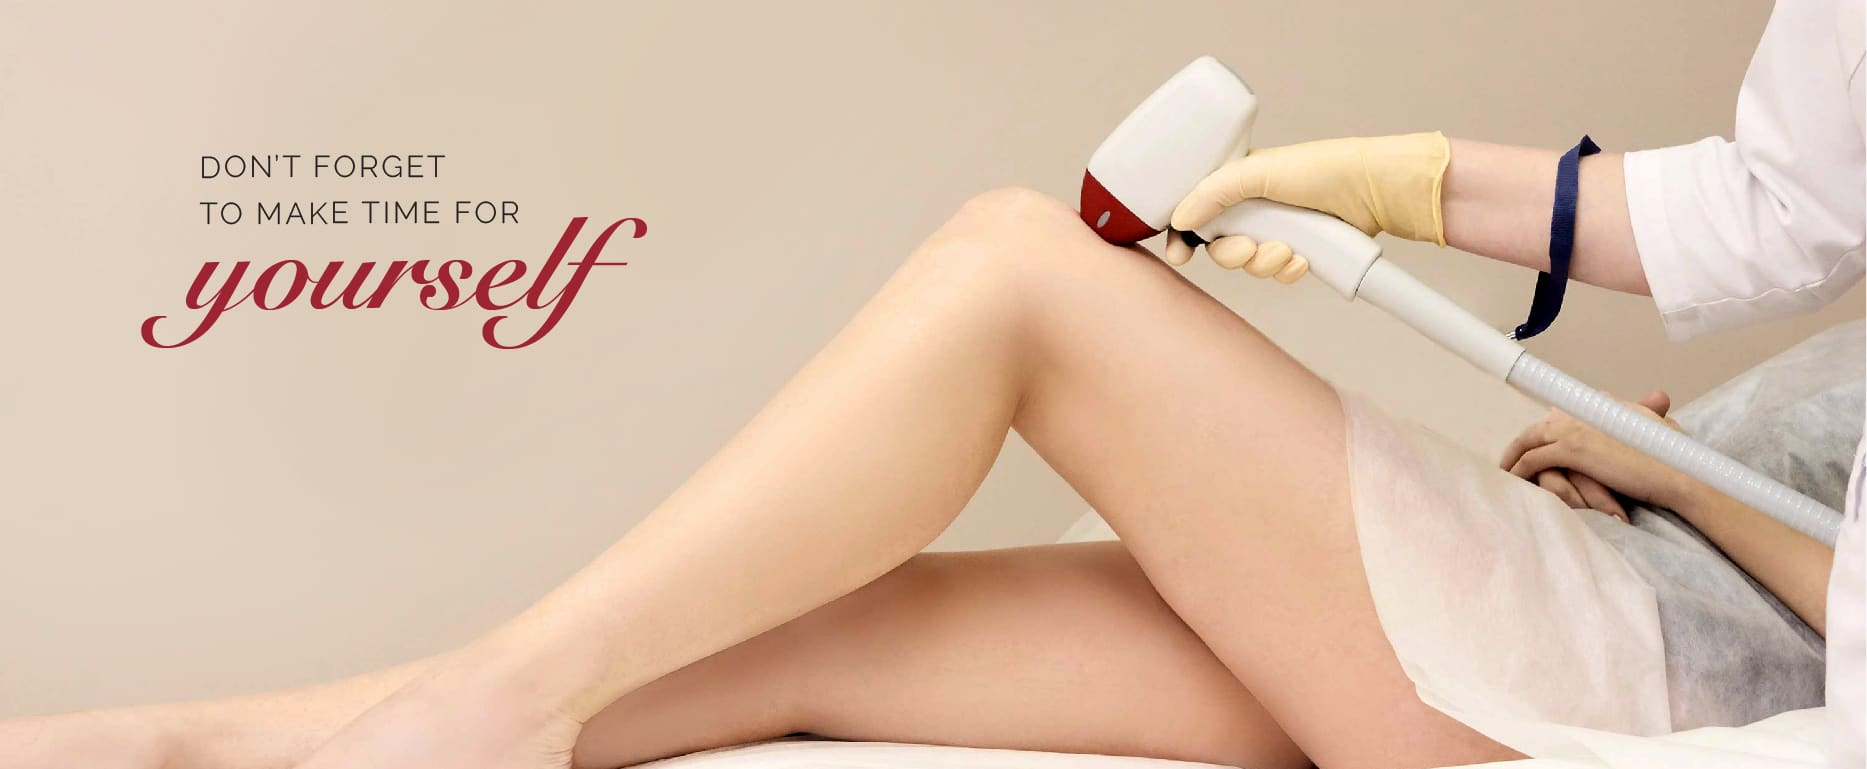 banner body laser treatment